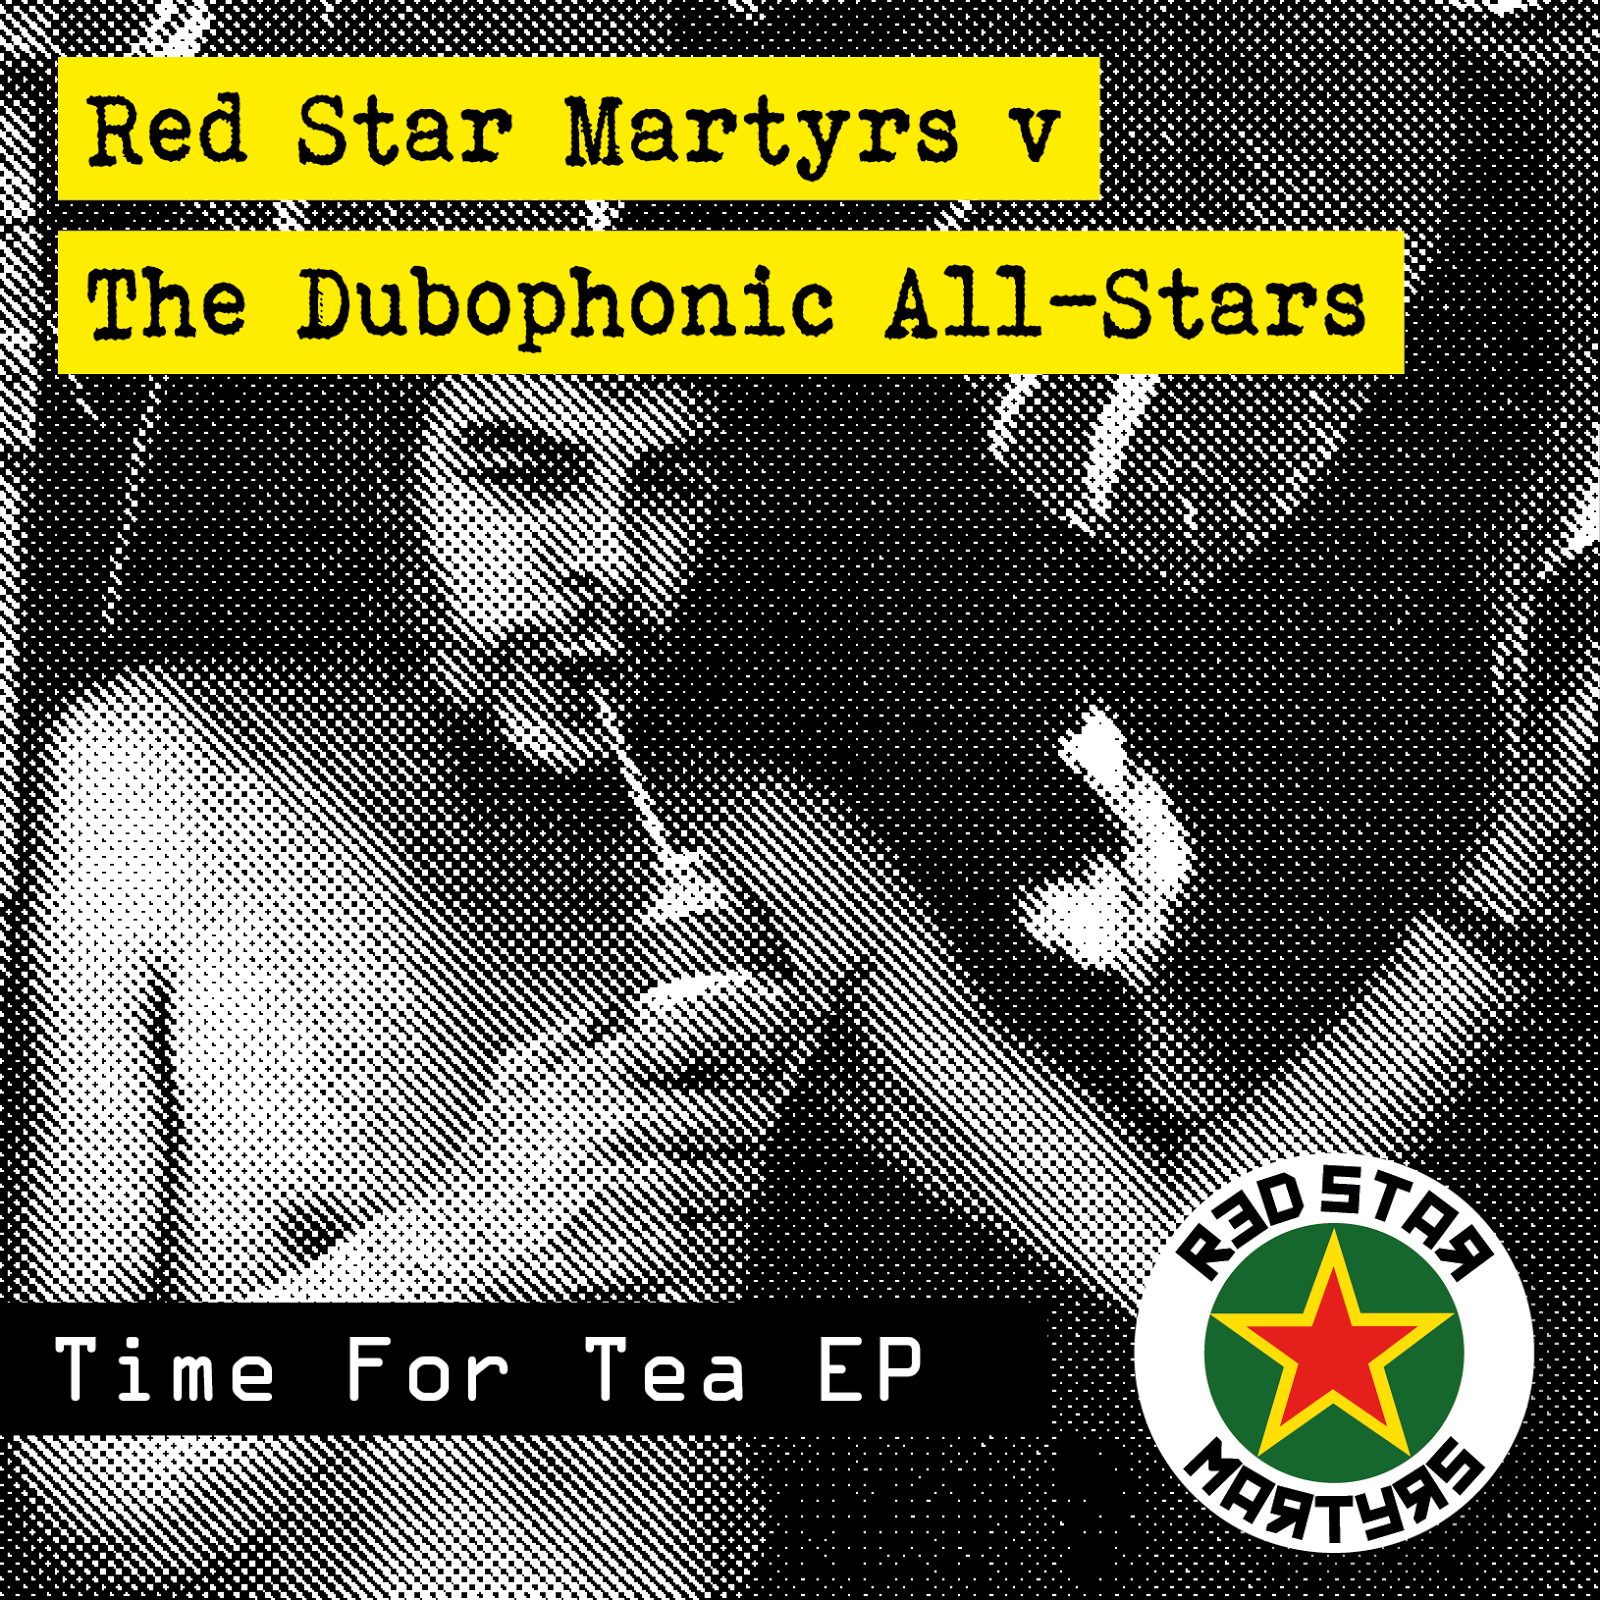 [DPH013] Red Star Martyrs vs The Dubophonic All-Stars - Time for Tea / Dubophonic